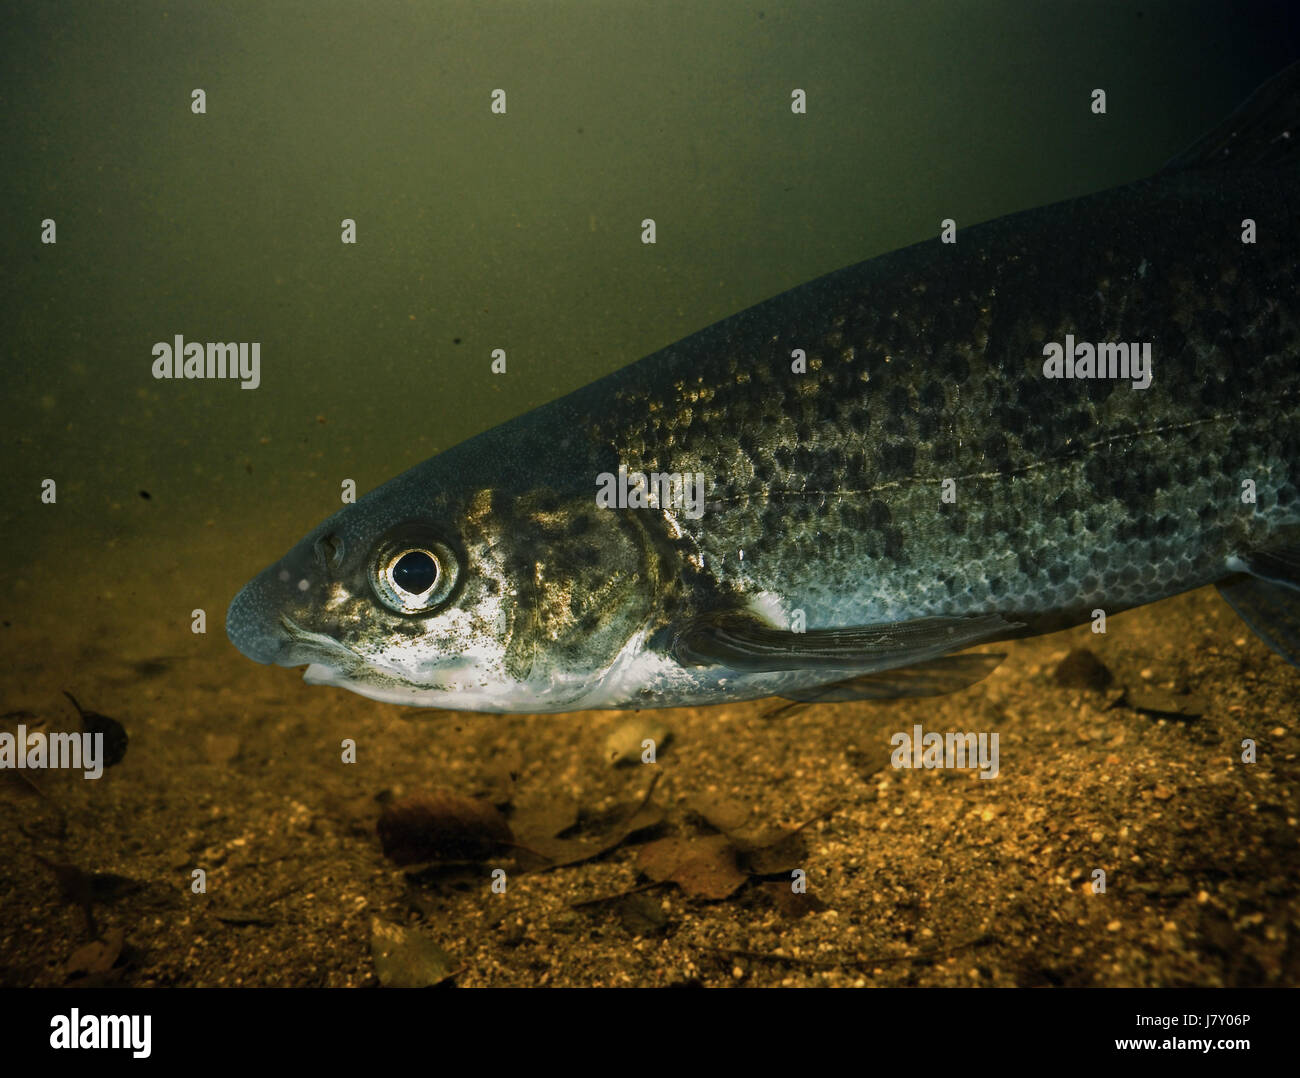 Northern straight-mouth nase, Pseudochondrostoma duriense, head detail. Spawning male with characteristic nuptial Stock Photo